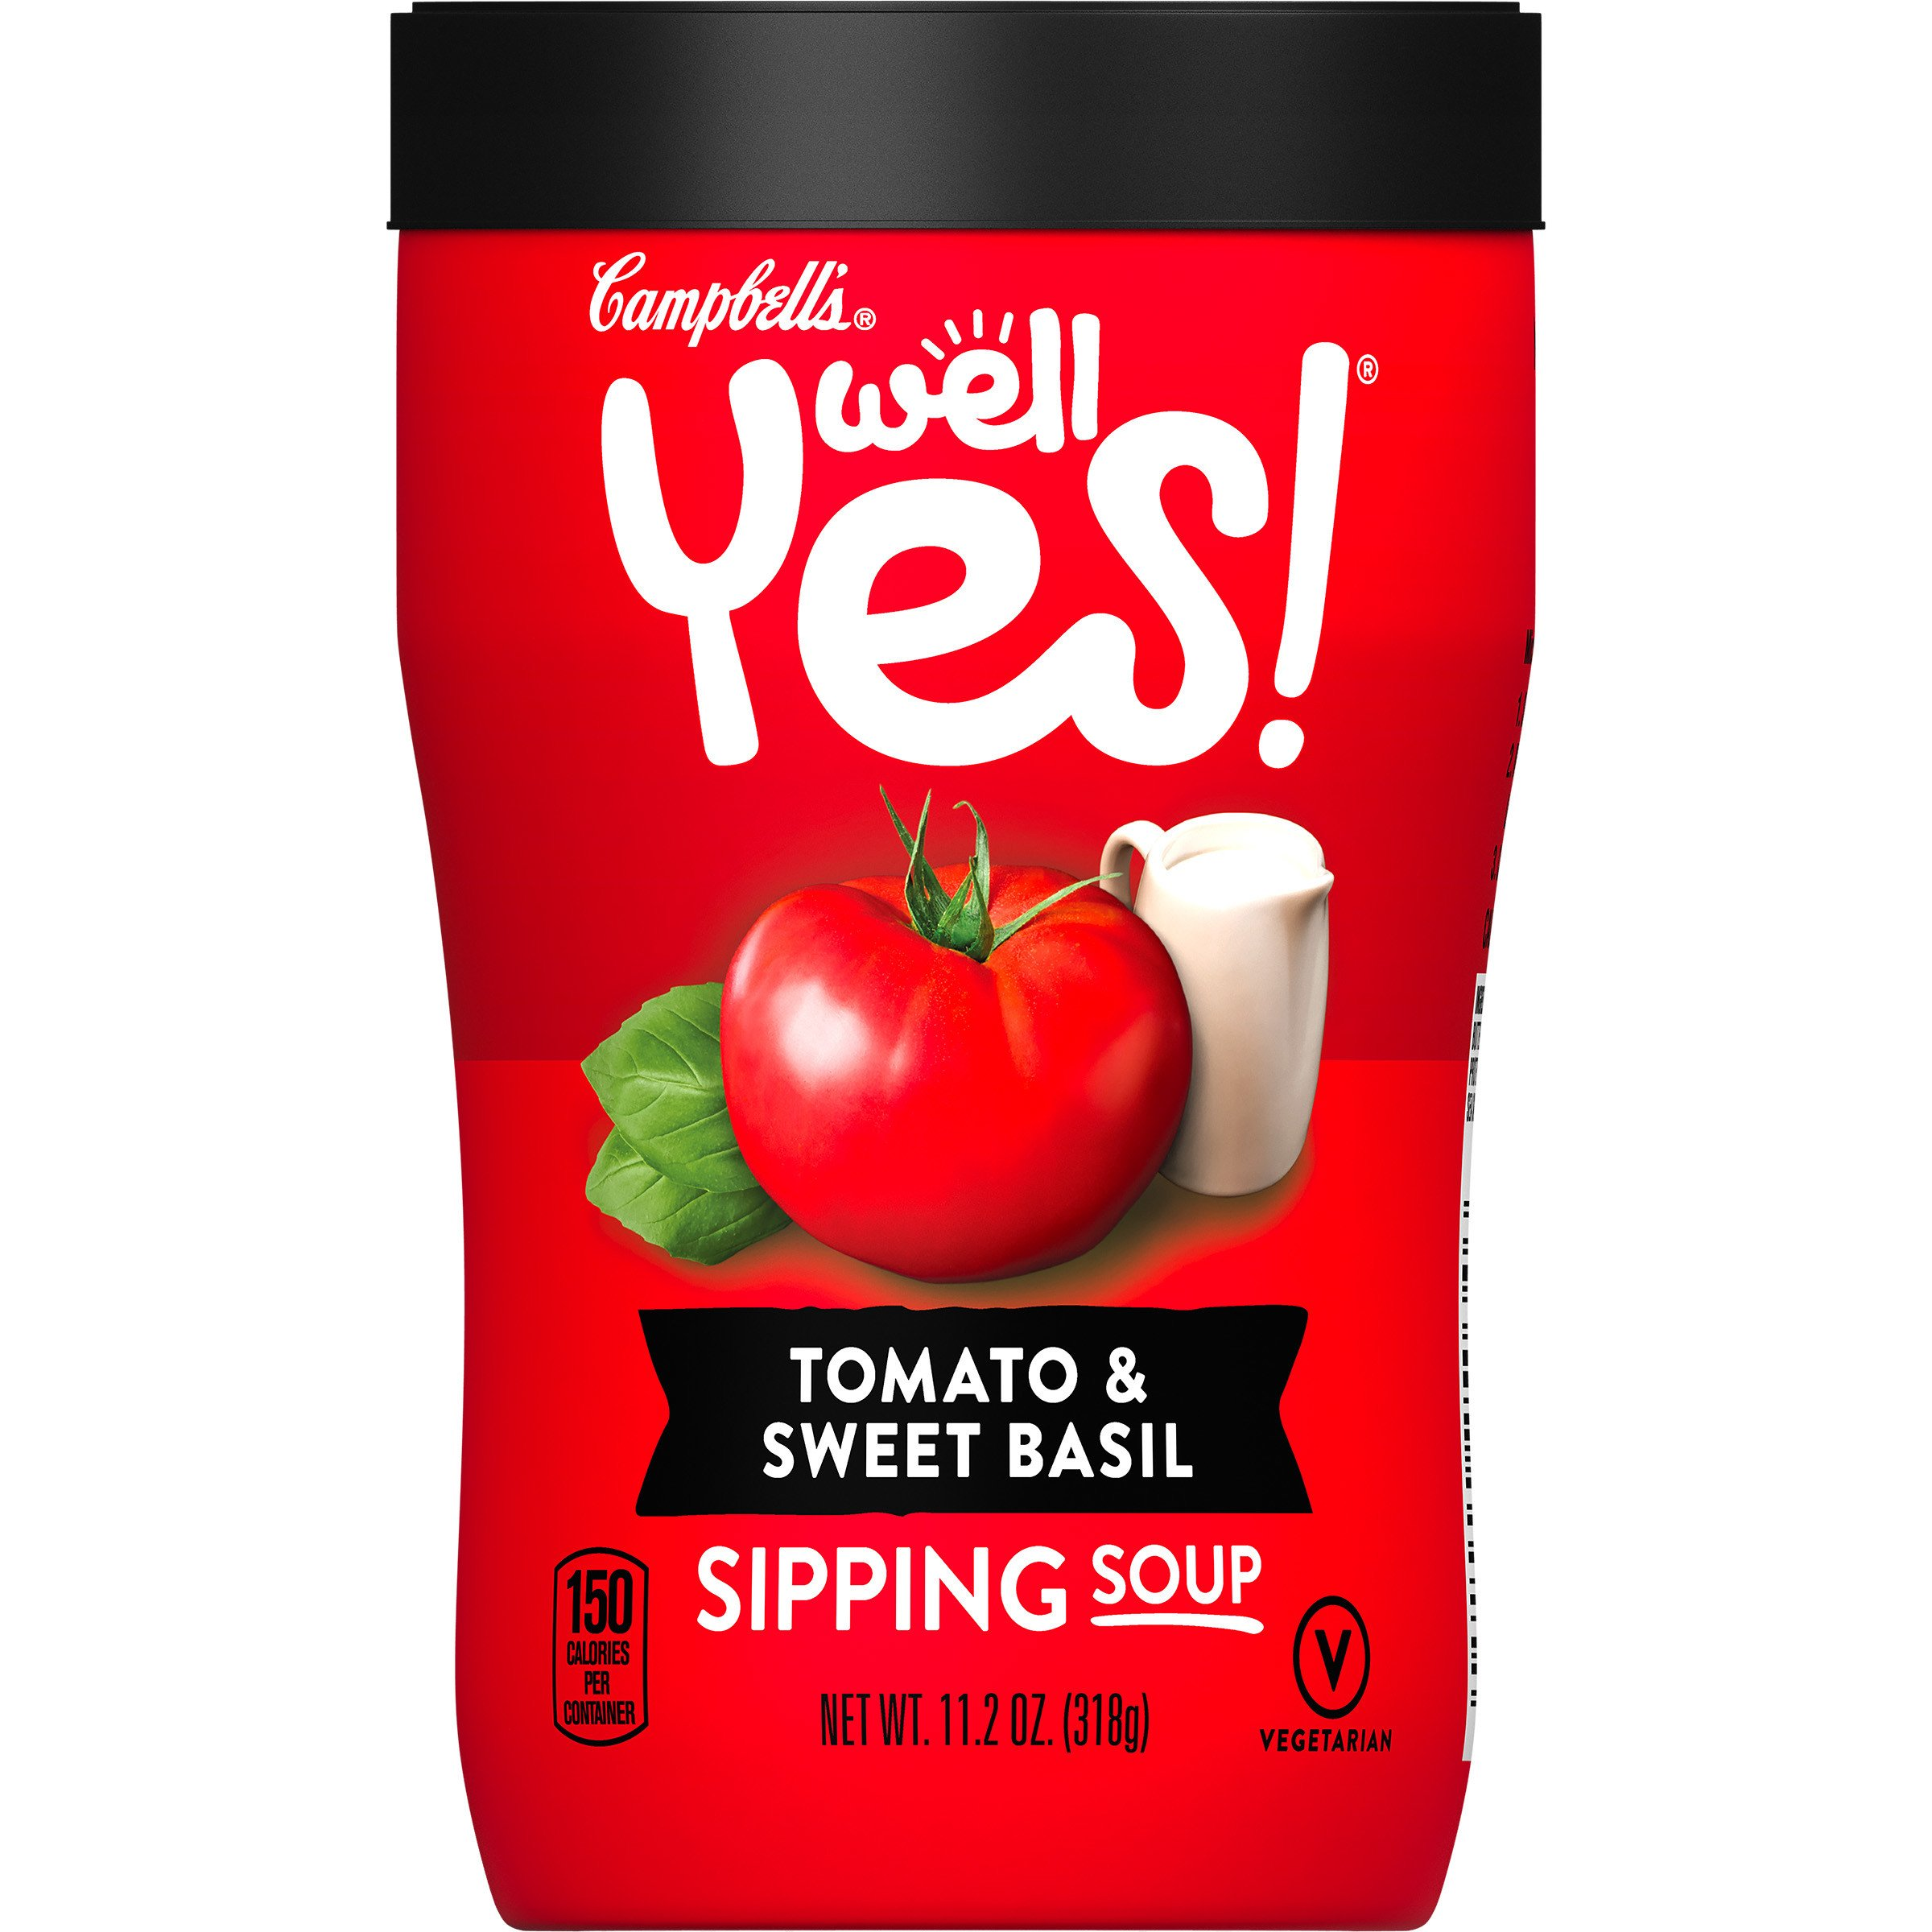 Campbell's Well Yes! Sipping Soup, Tomato & Sweet Basil, 11.2 oz. Cup by Well Yes!